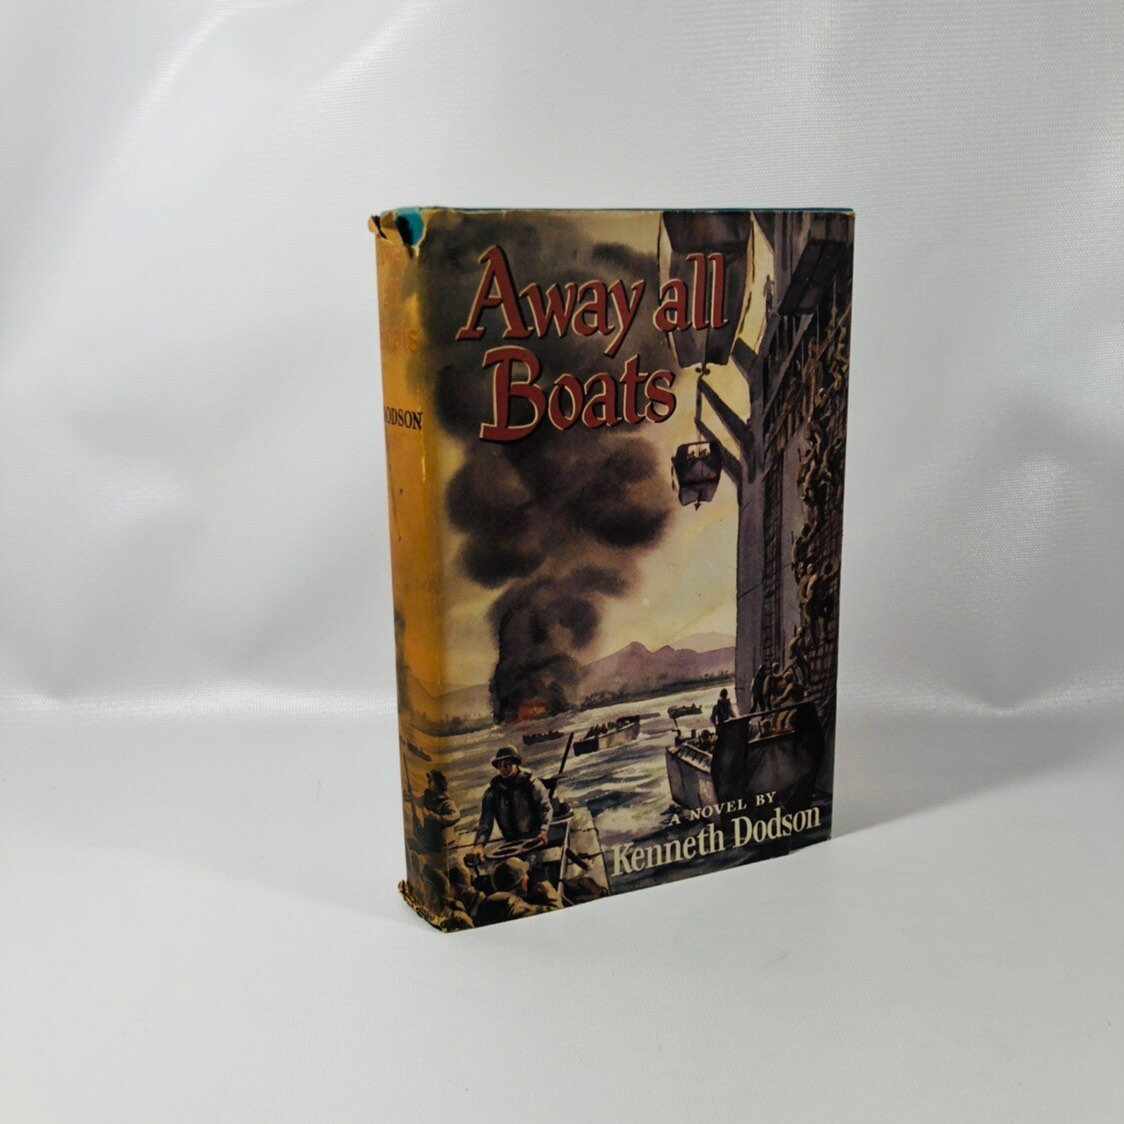 Away all Boats A Vintage World War 2 Navy Novel by Kenneth Dodson First Edition 1954